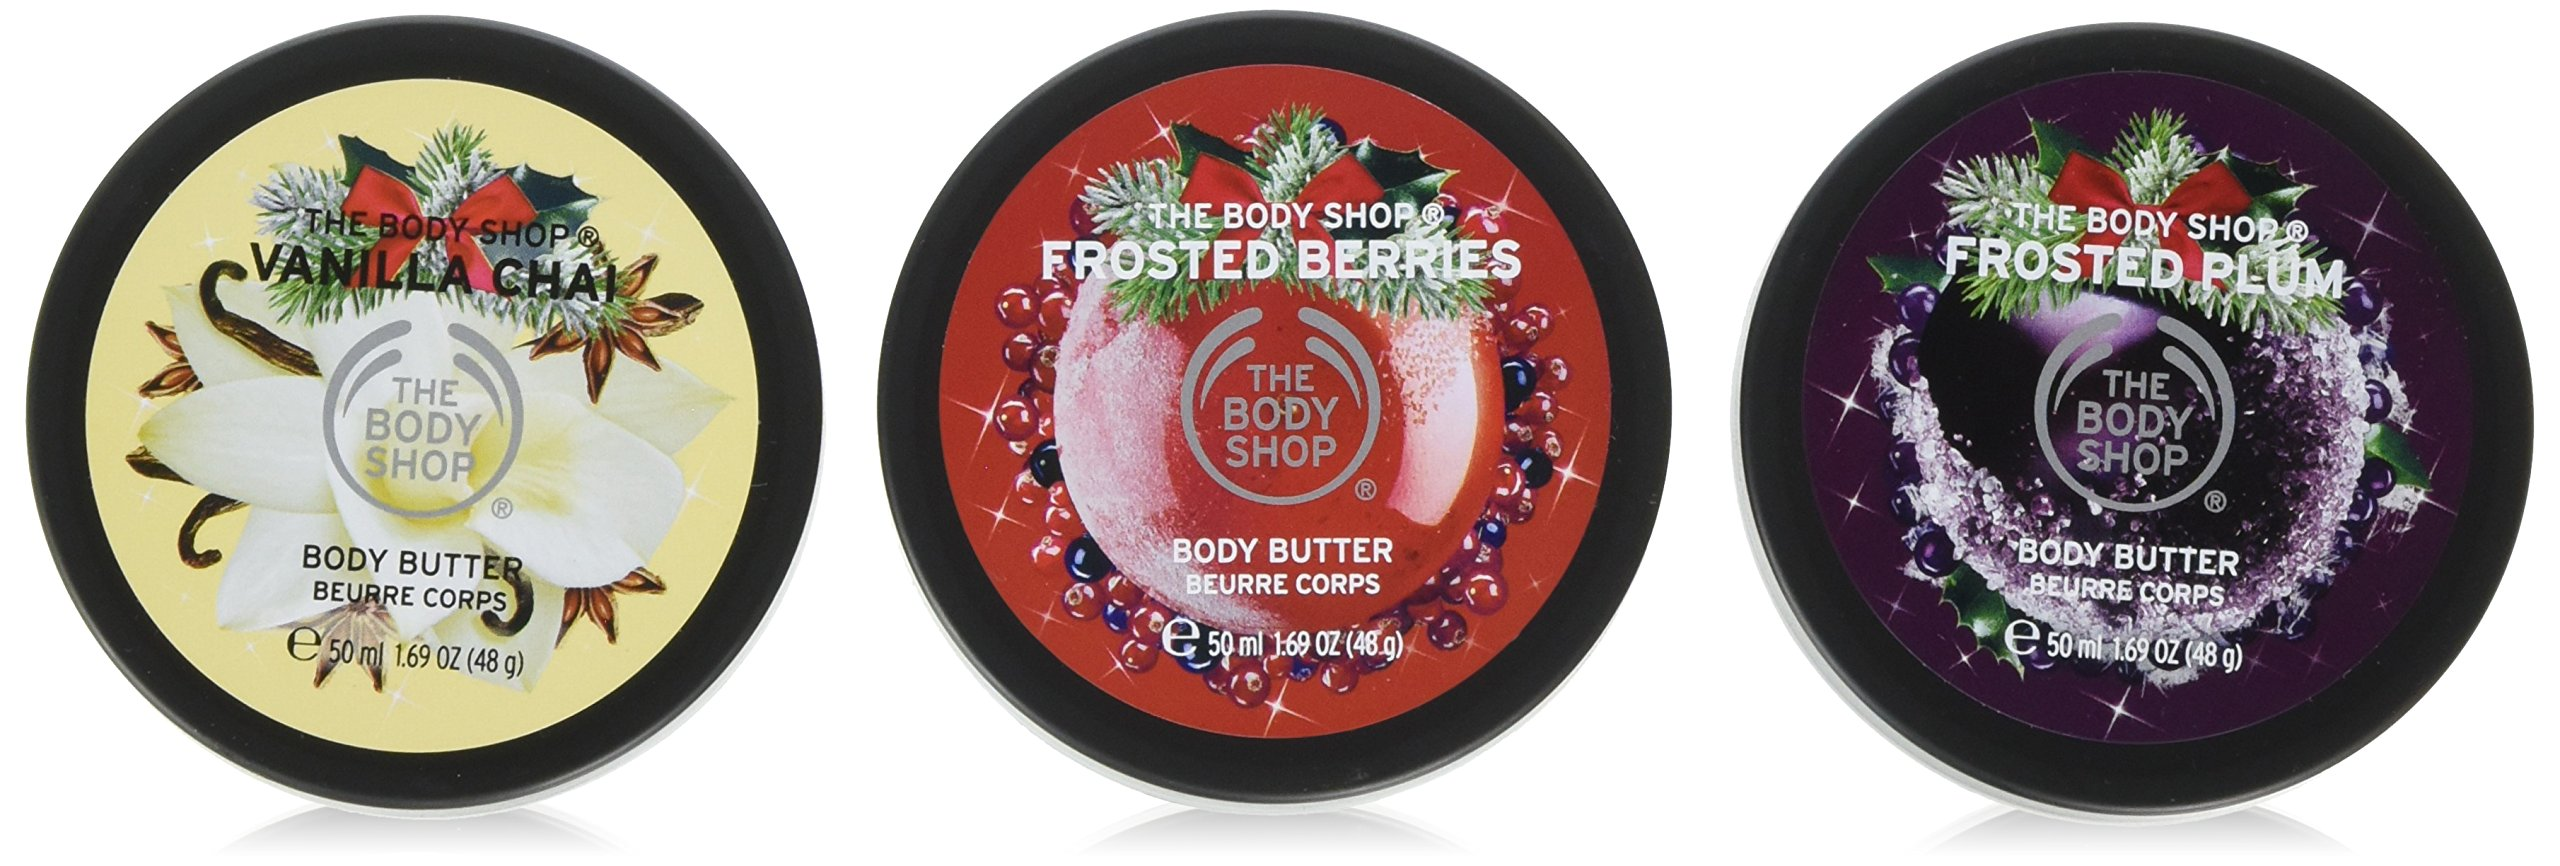 The Body Shop Limited Edition Seasonal Body Butters Trio Spinner Gift Set, 3pc Set of Travel Size Assorted Body Butters